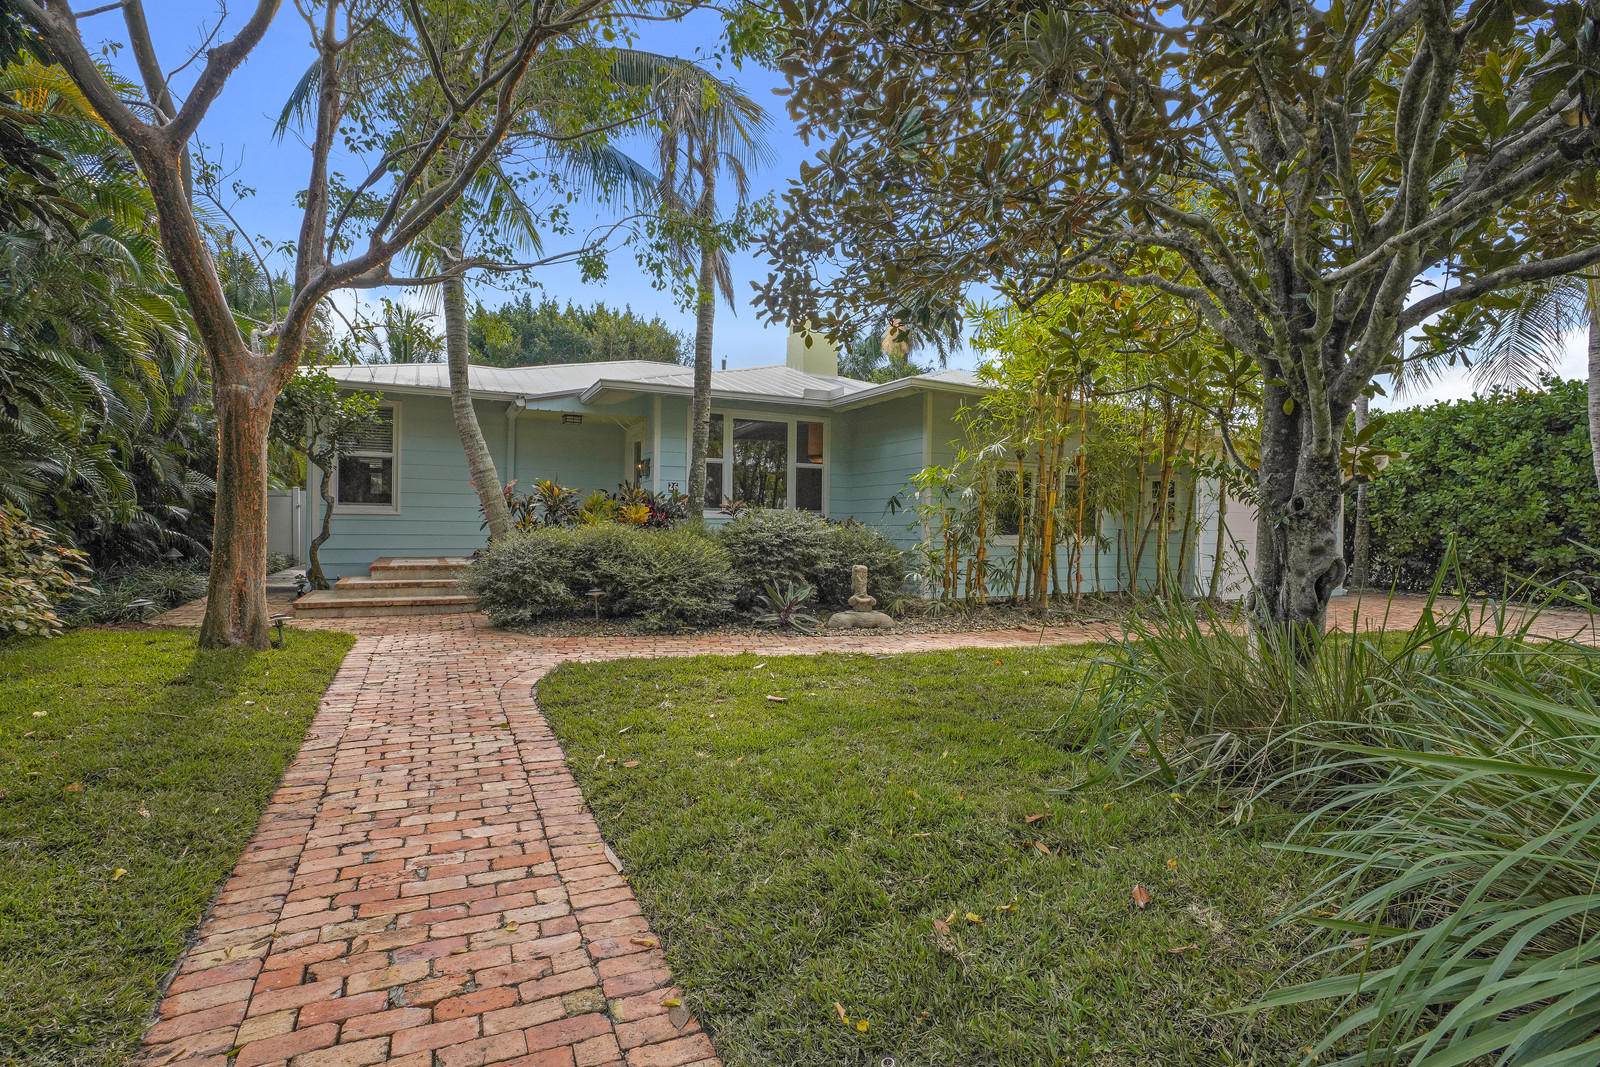 Home for sale in Pineridge Heights Delray Beach Florida